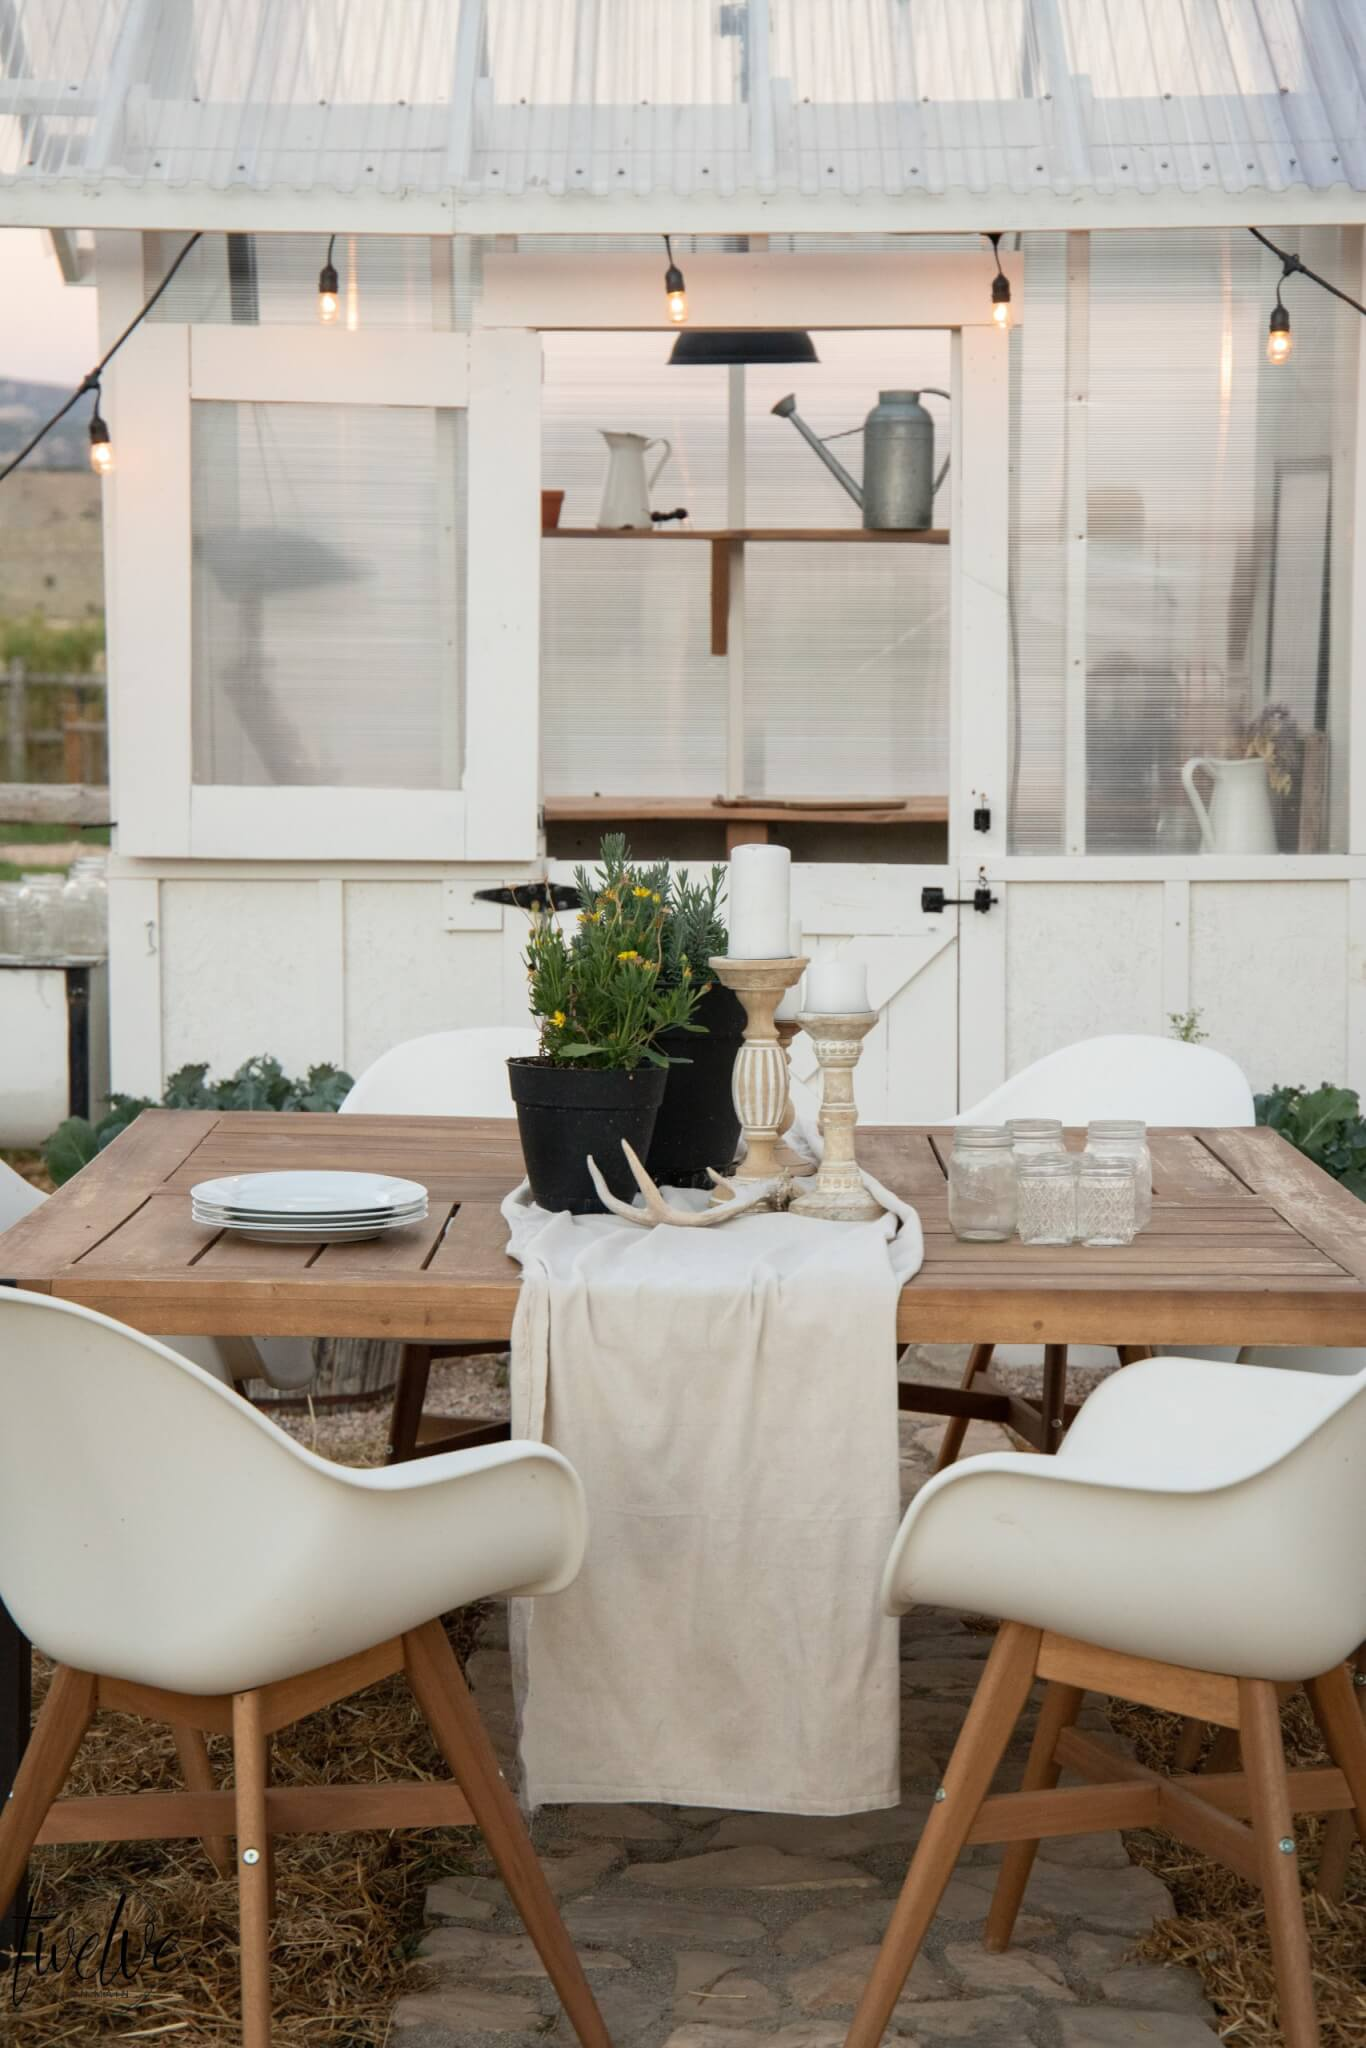 Summer Dining Ideas in the Garden